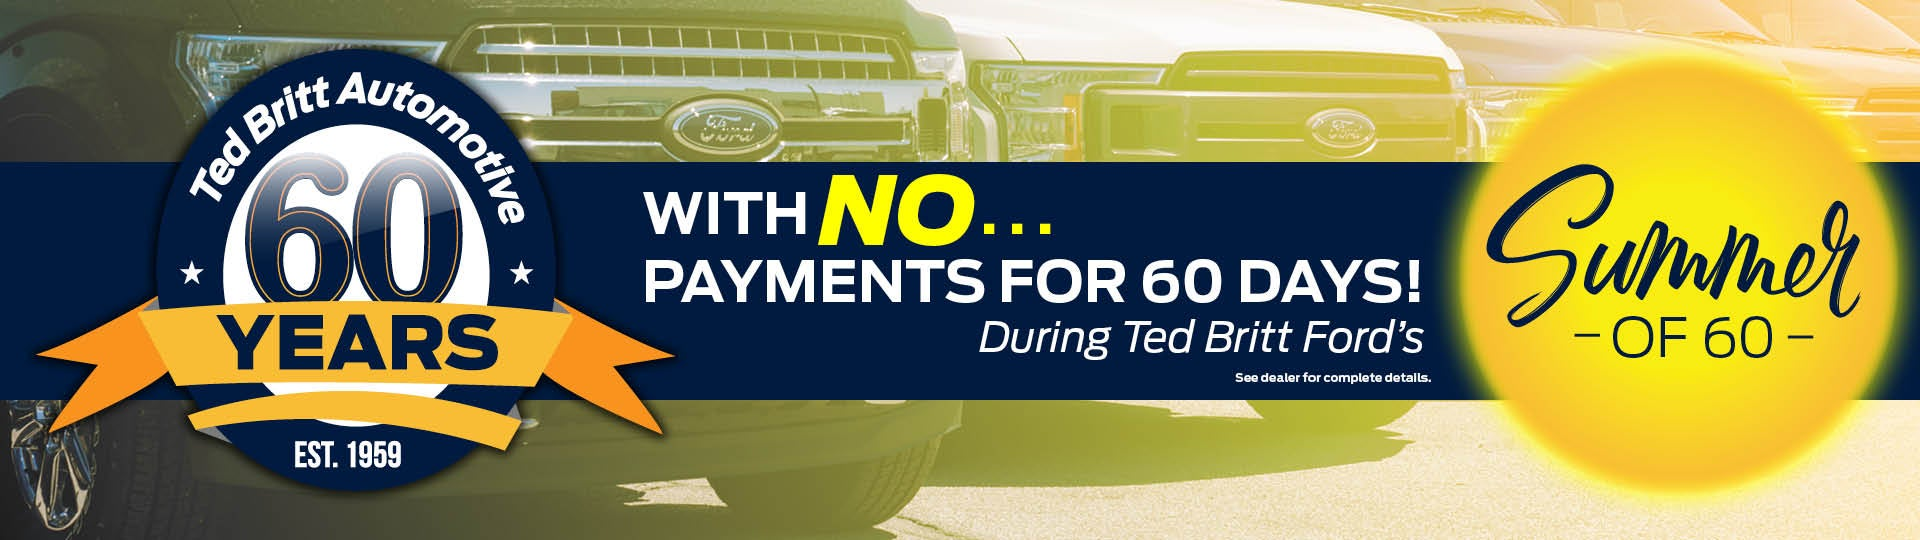 New Ford Cars Truck & SUVs For Sale | Ted Britt Ford in Fairfax